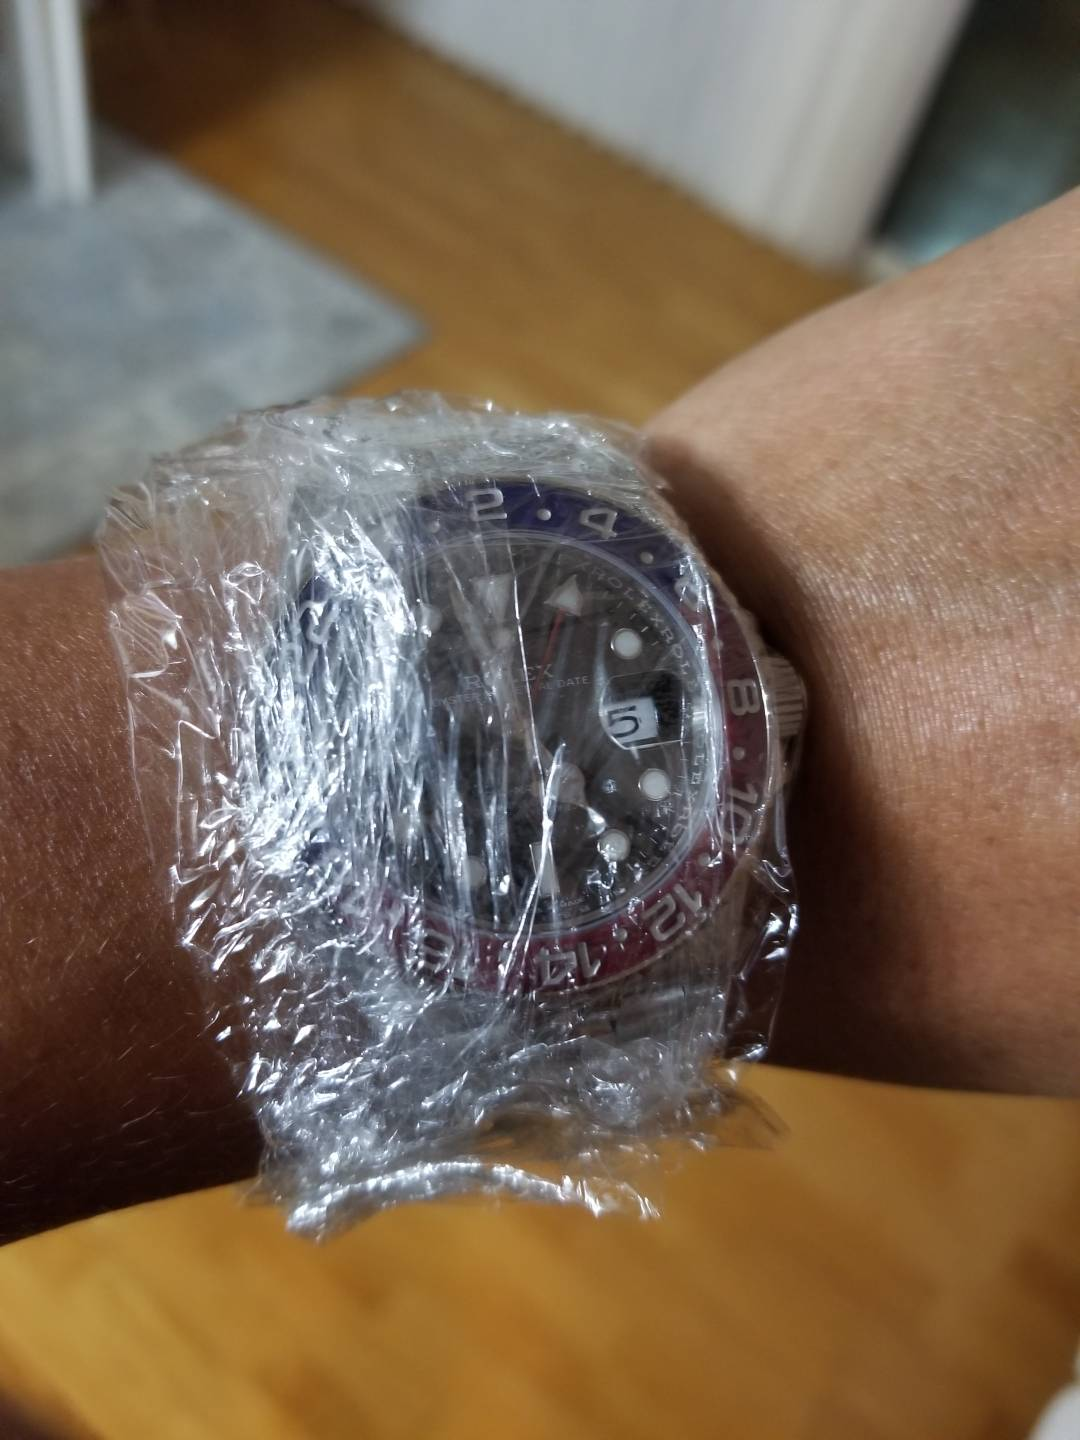 The safe way to wearing your rolex - Rolex Forums - Rolex